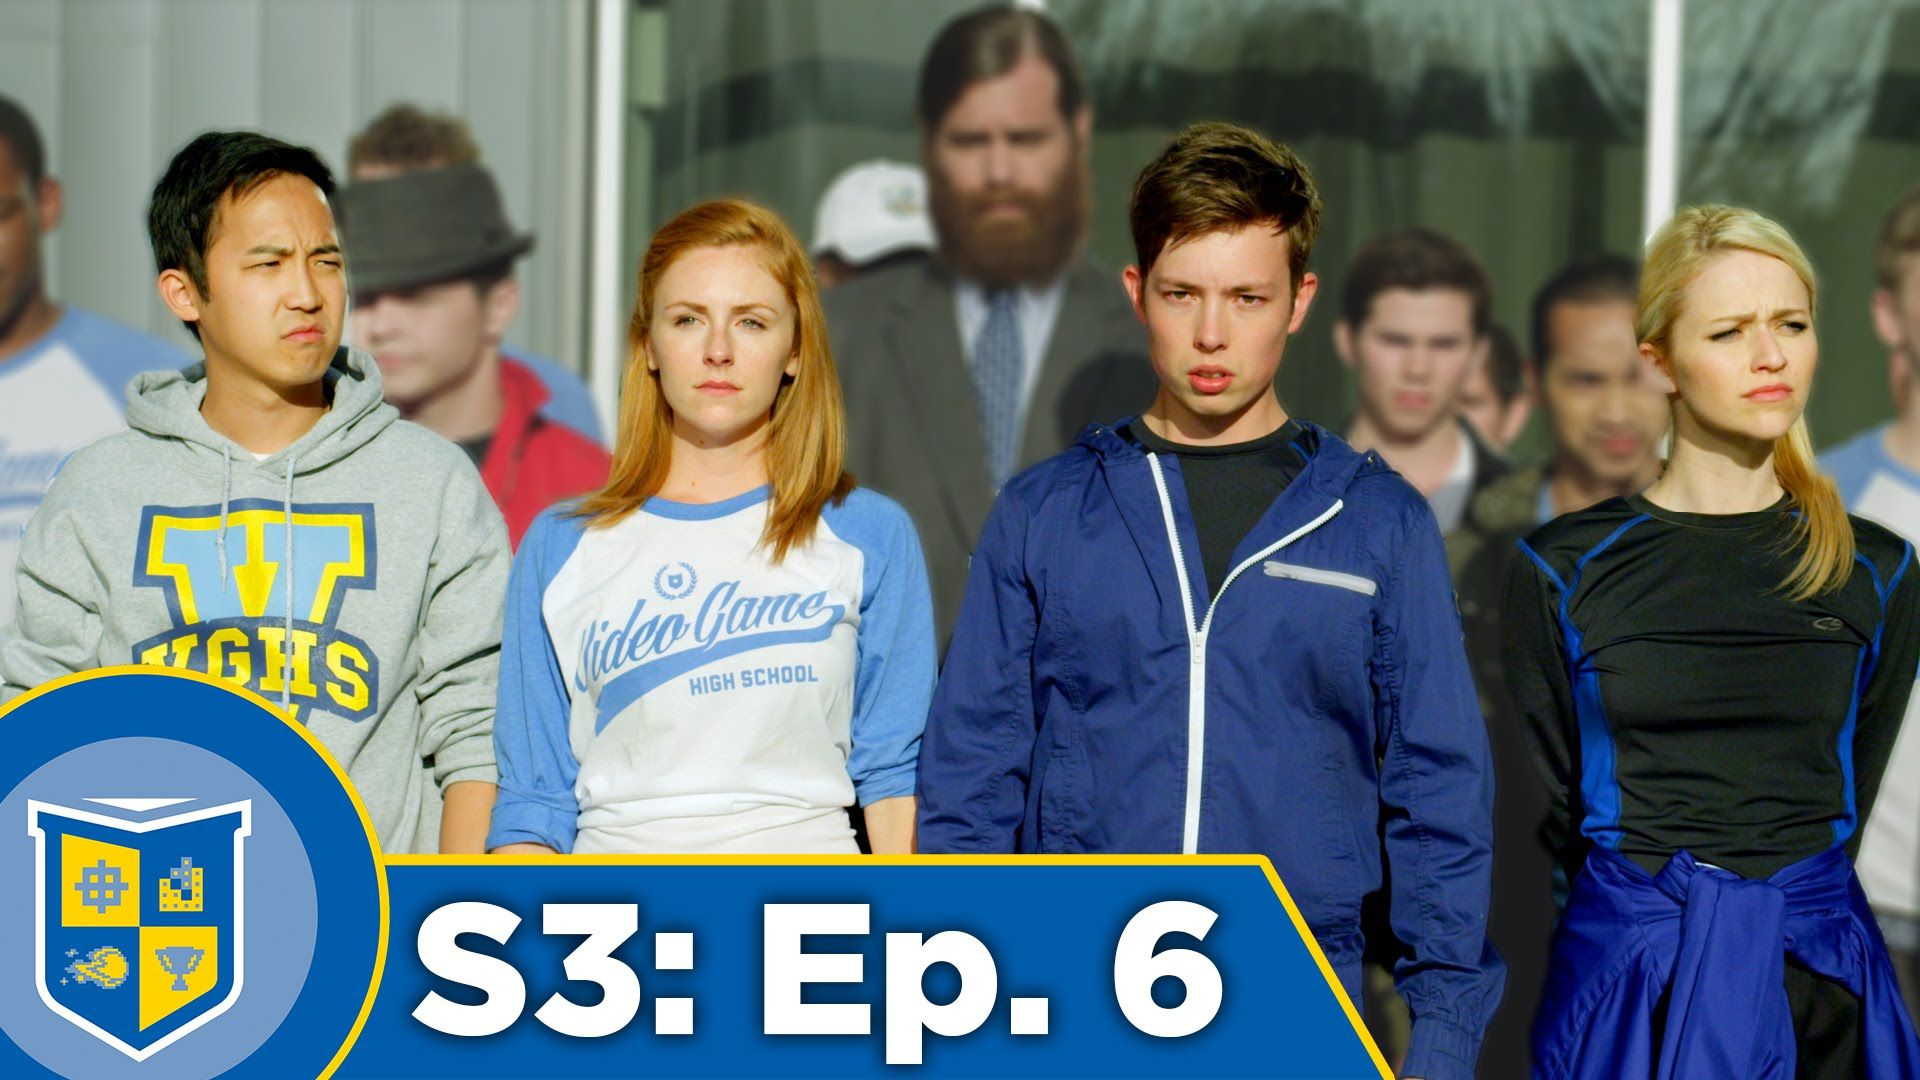 Video Game High School (VGHS) S3 Ep. 6 SERIES FINALE